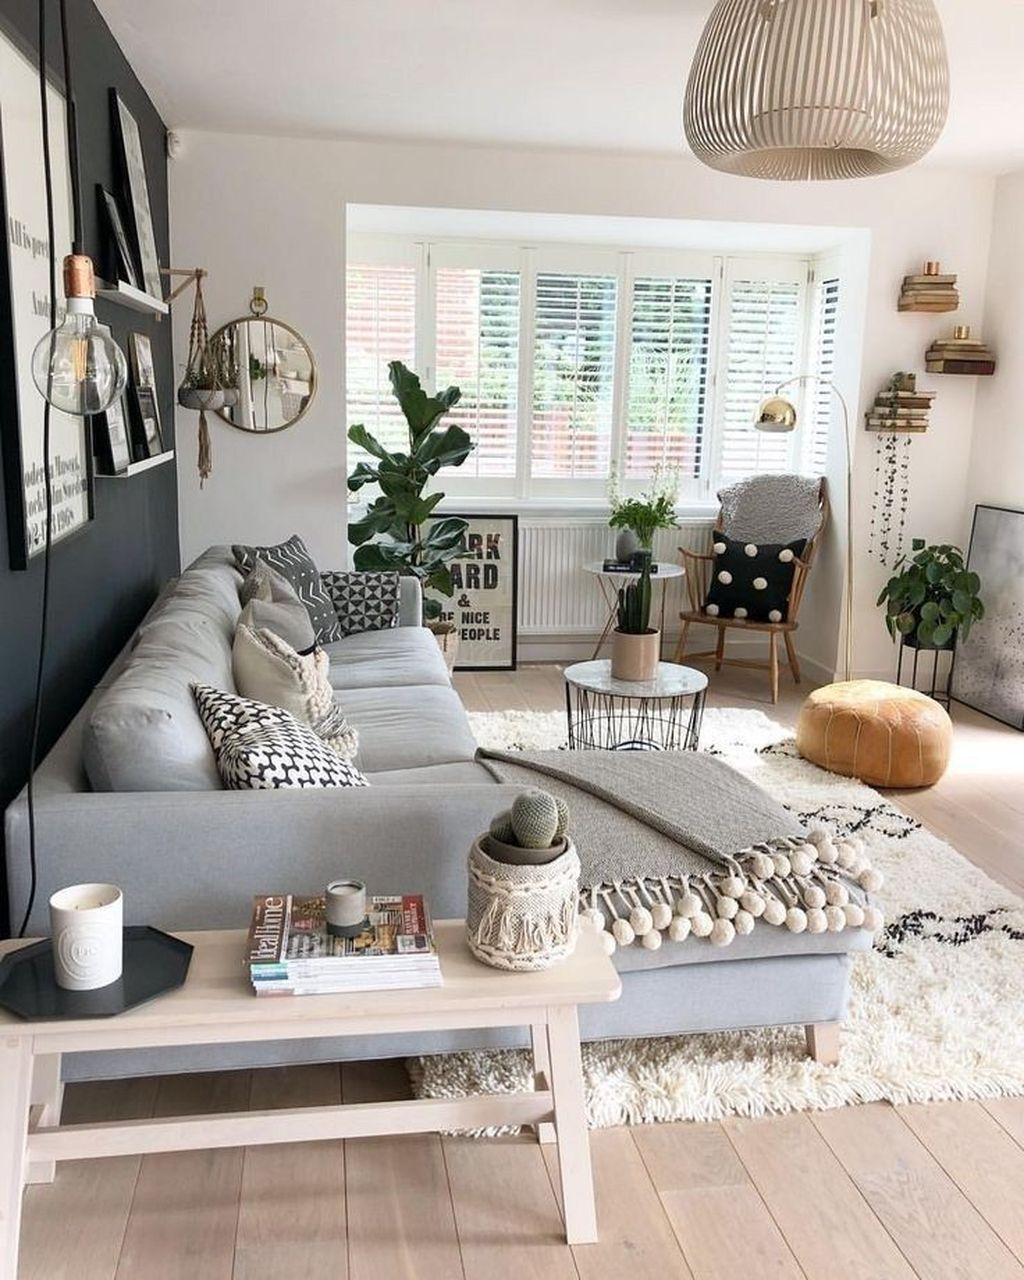 33 Awesome Small Space Living Room Decor Ideas In 2020 Living Room Decor Modern Small Apartment Living Room Next Living Room